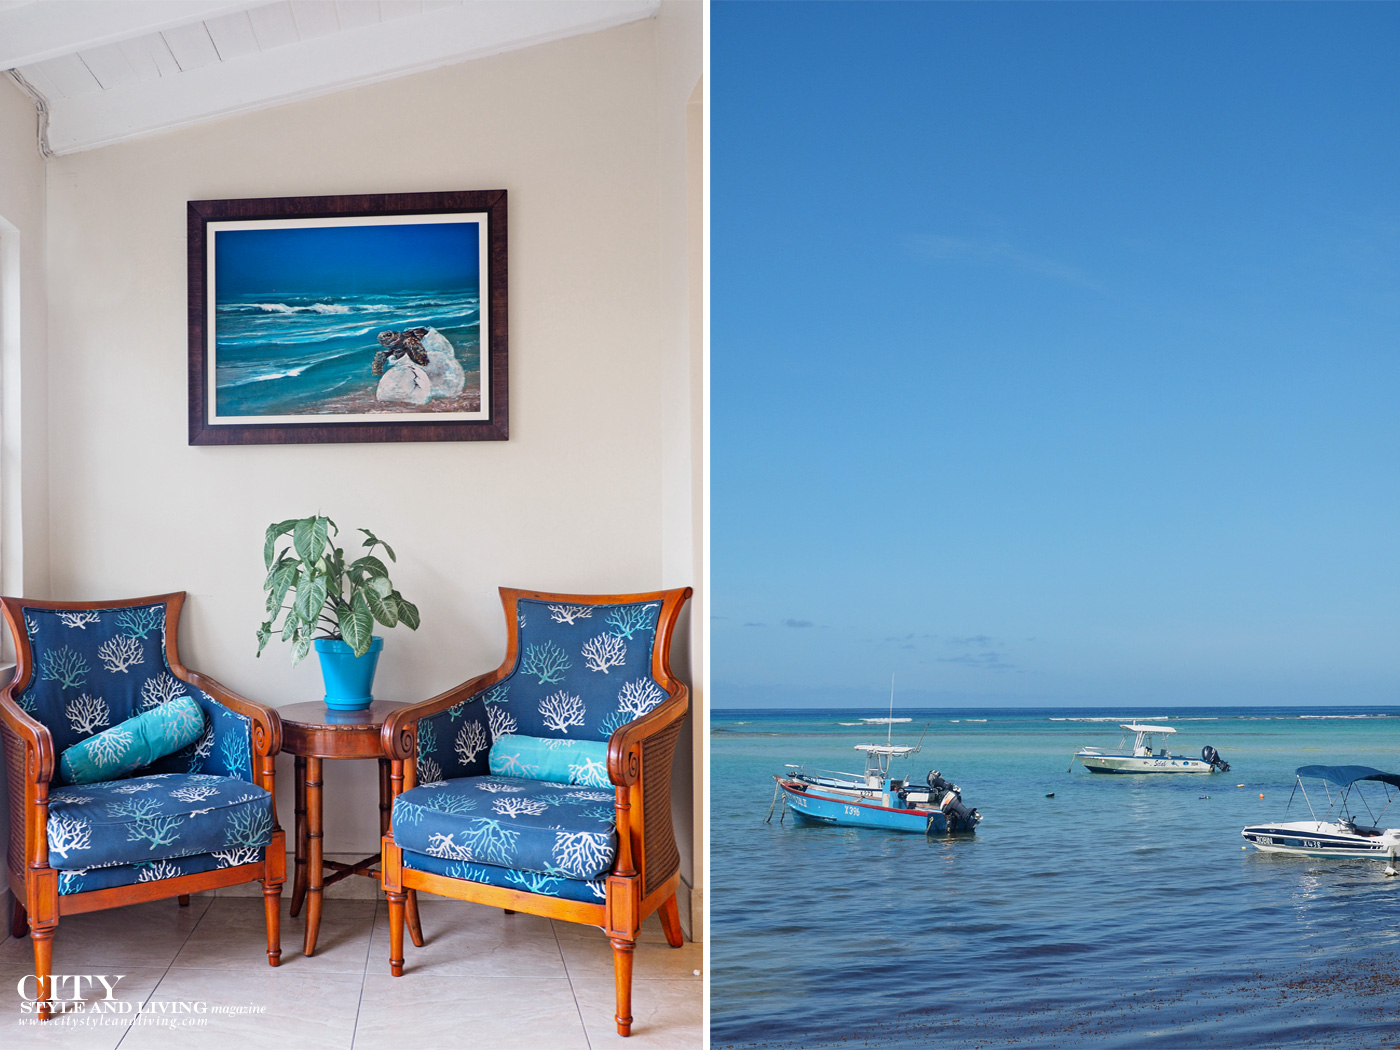 City Style and Living Magazine Winter 2019 Barbados Yellow Bird hotel Kailash Maharaj lobby art and boats